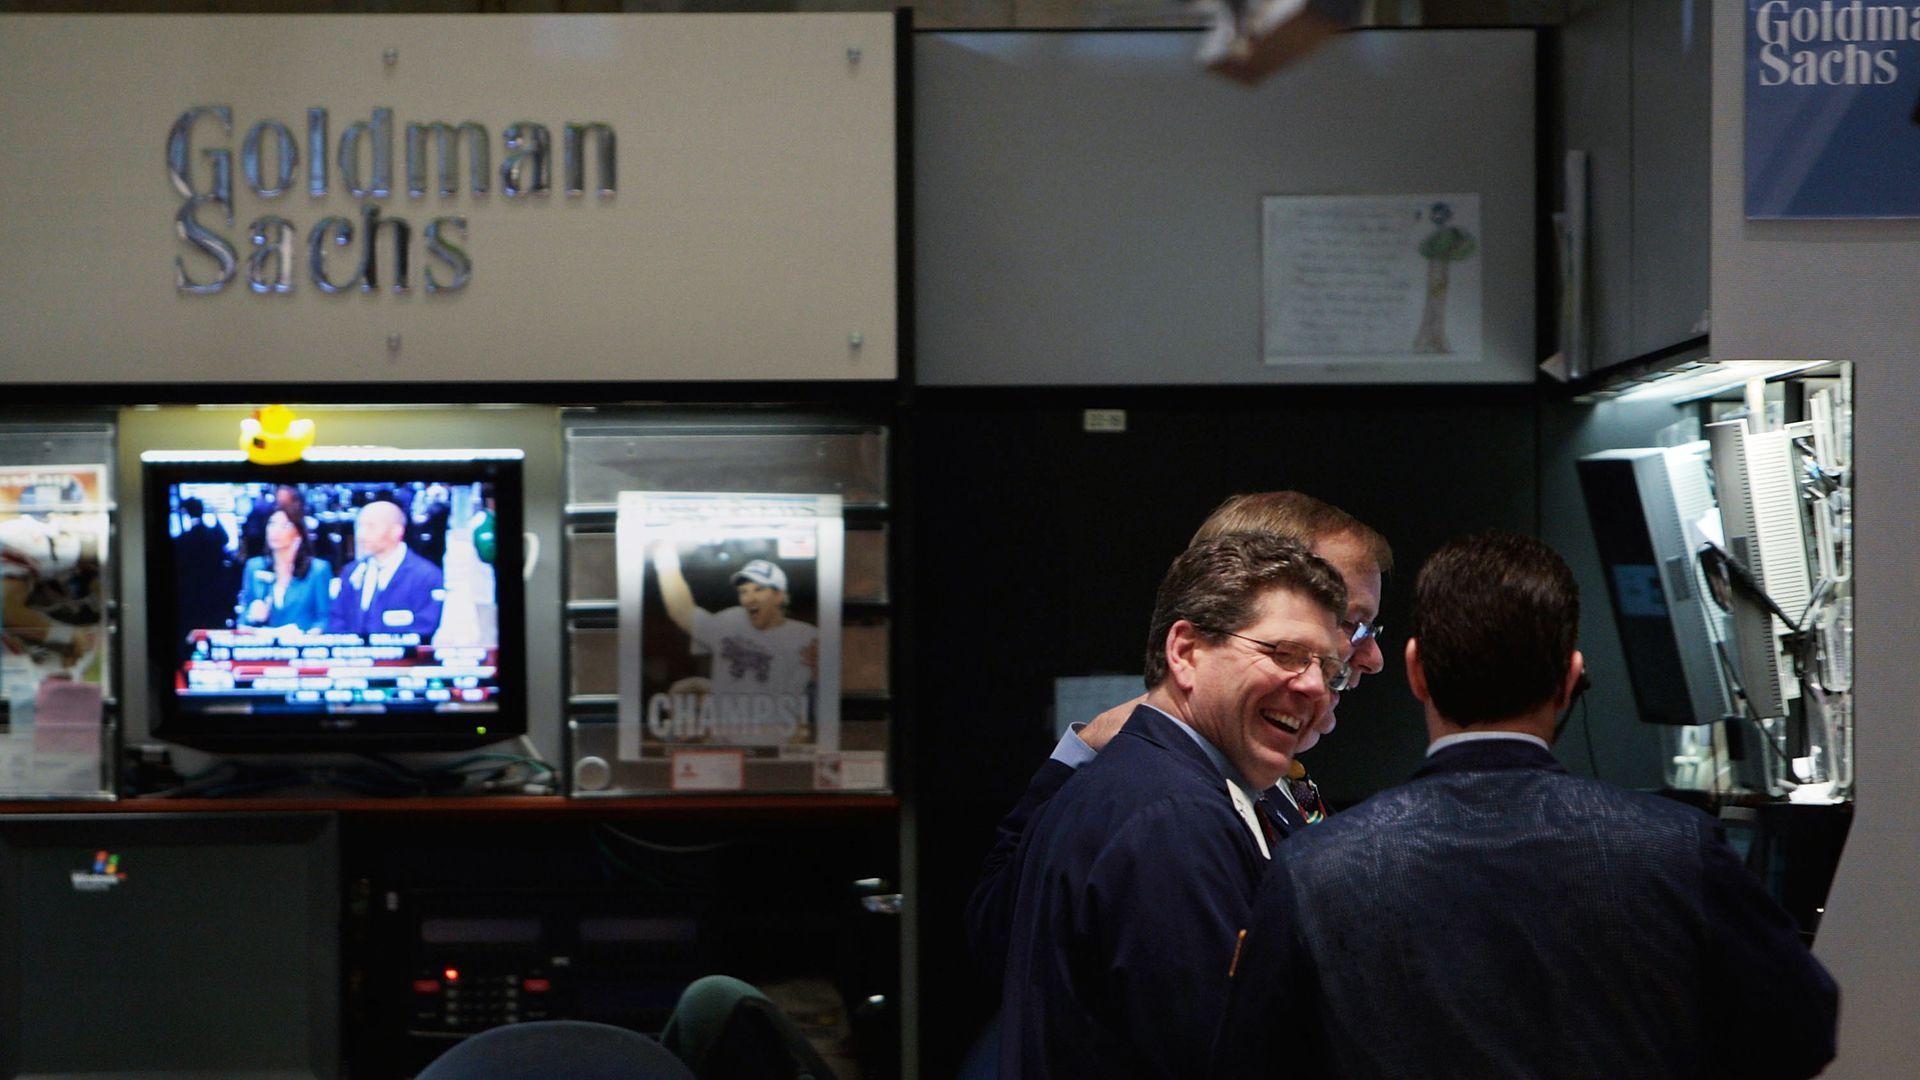 In this image, two men laugh in the Goldman Sachs booth at the New York Stock Exchange.